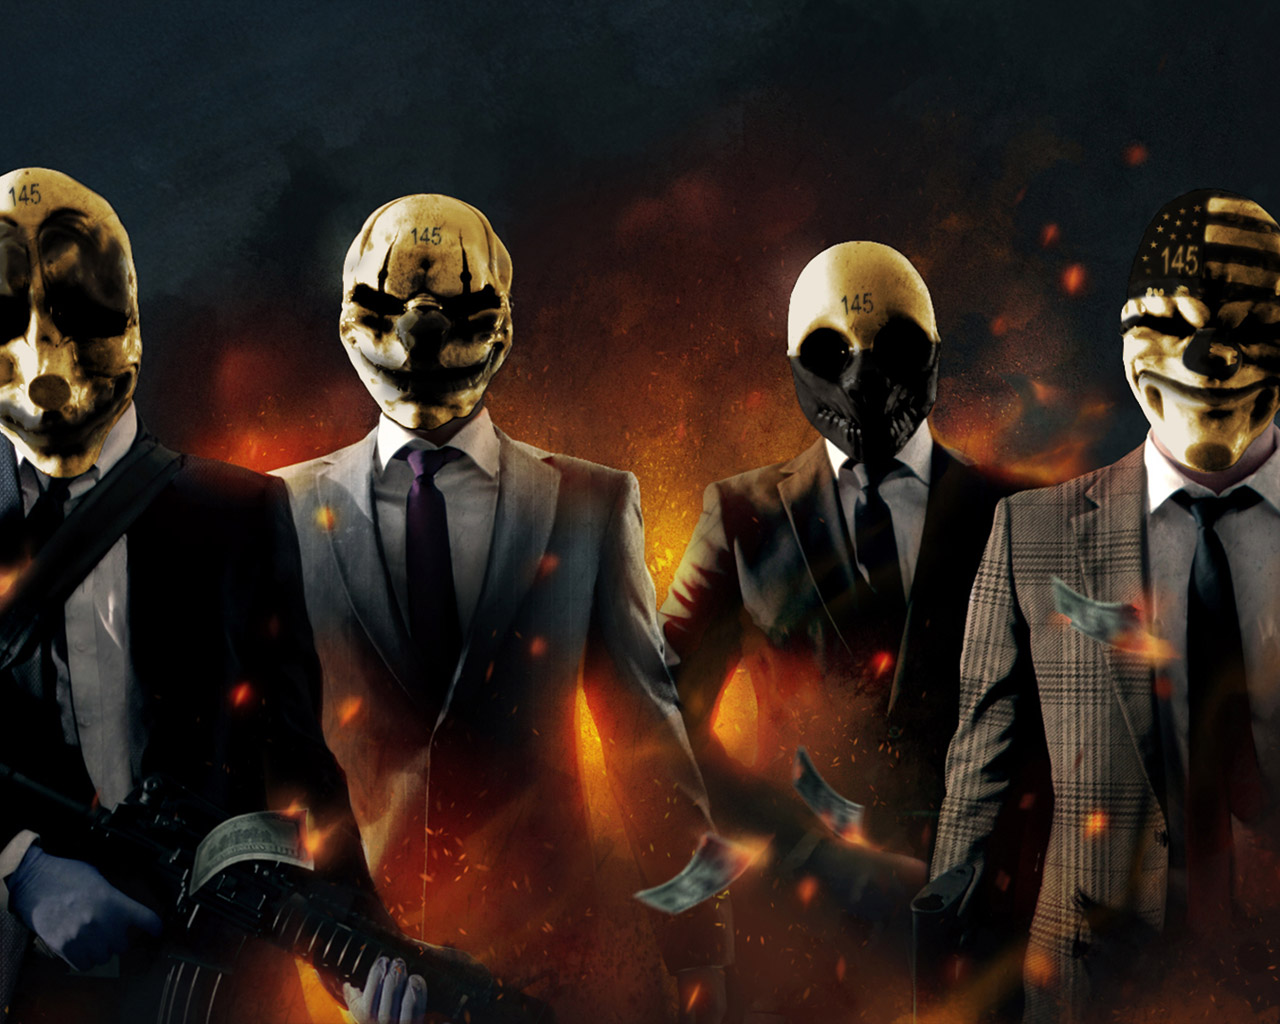 Free Payday: The Heist Wallpaper in 1280x1024